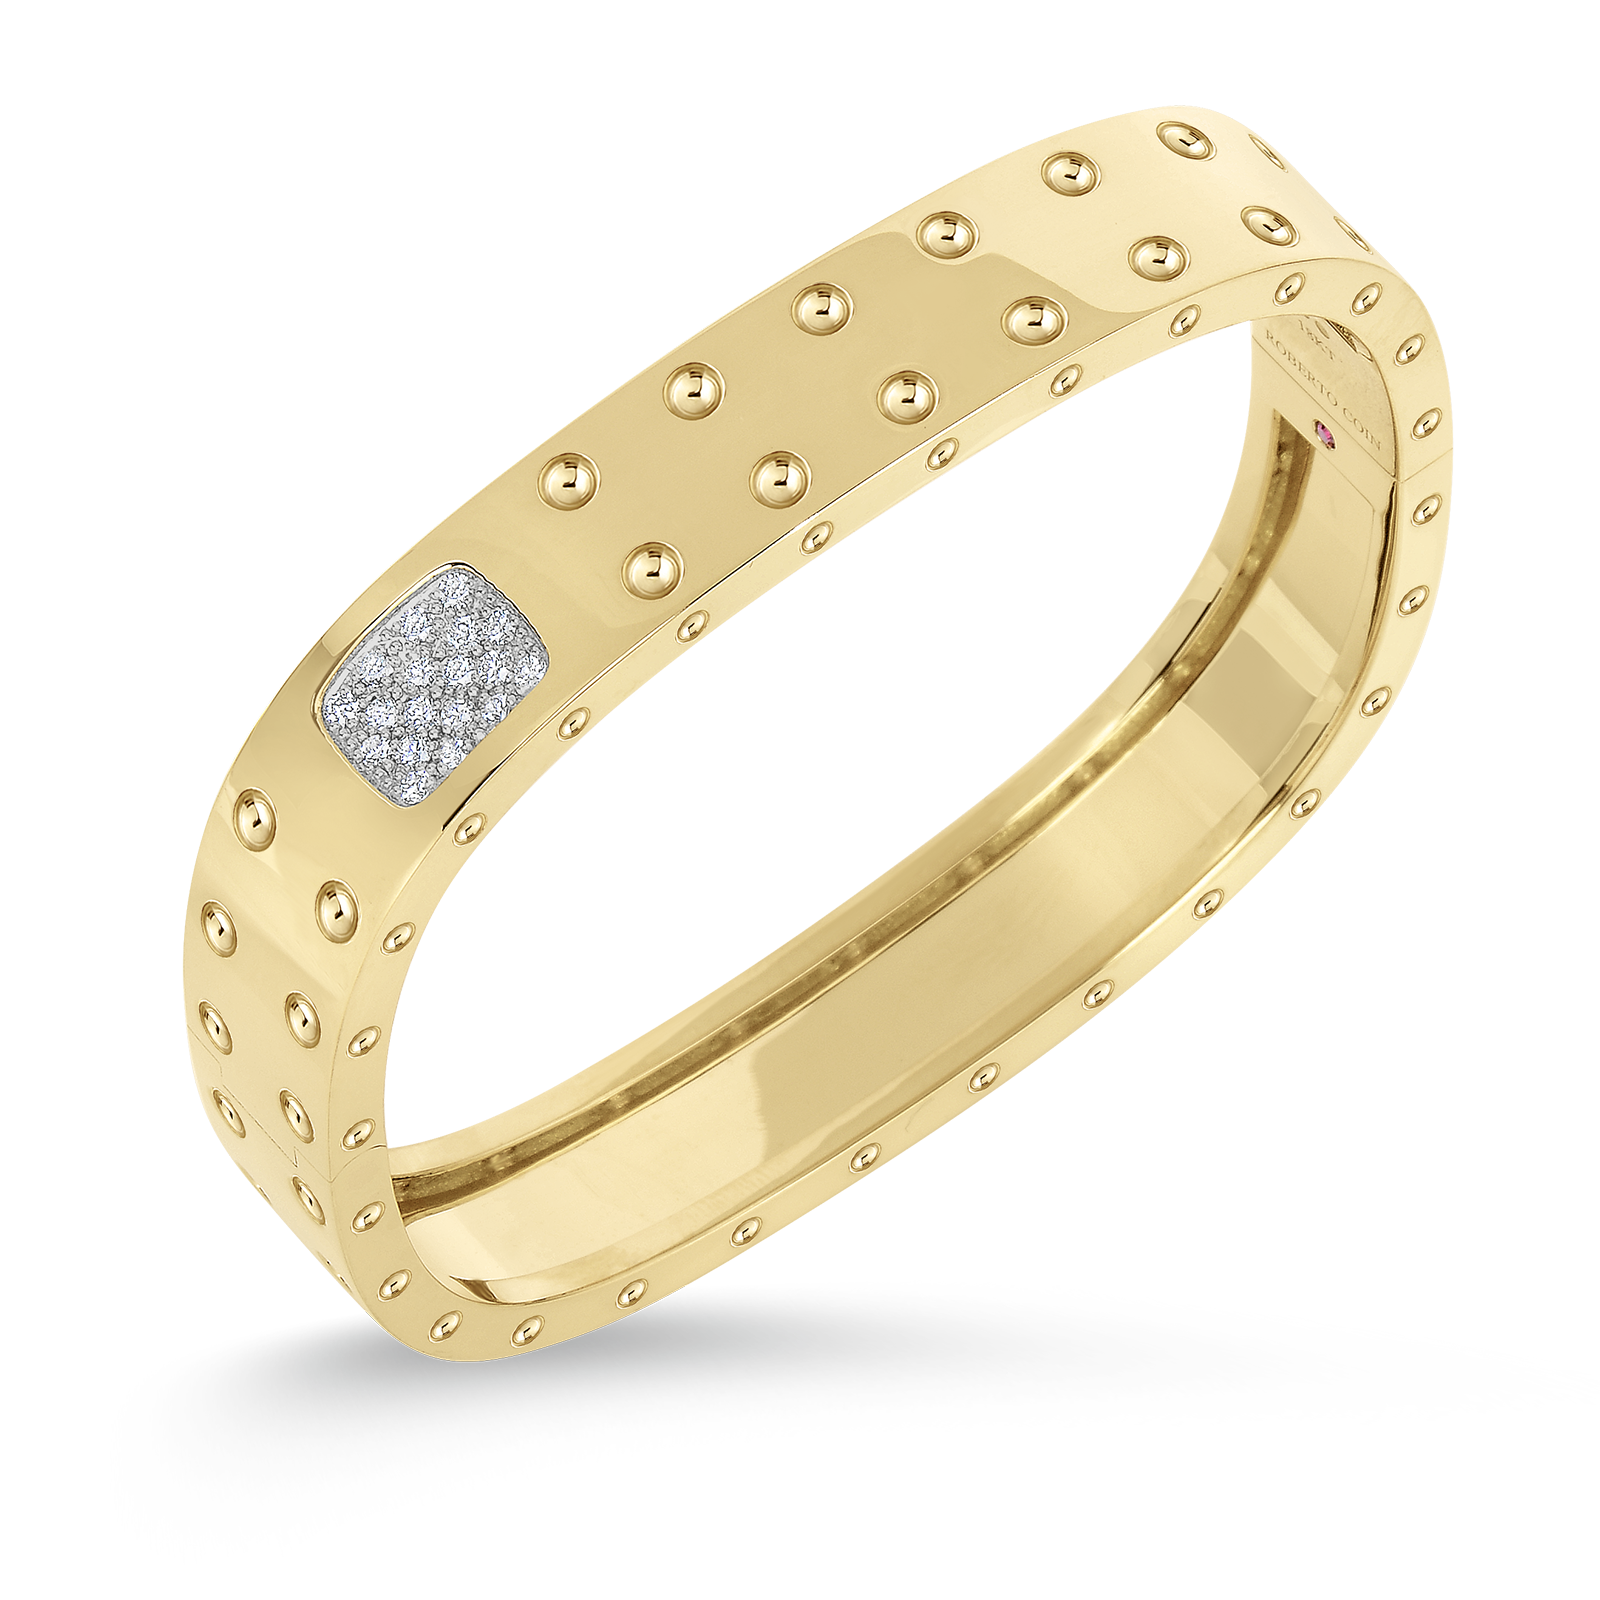 Roberto Coin 18K Gold 2 Row Square Bangle With Diamonds